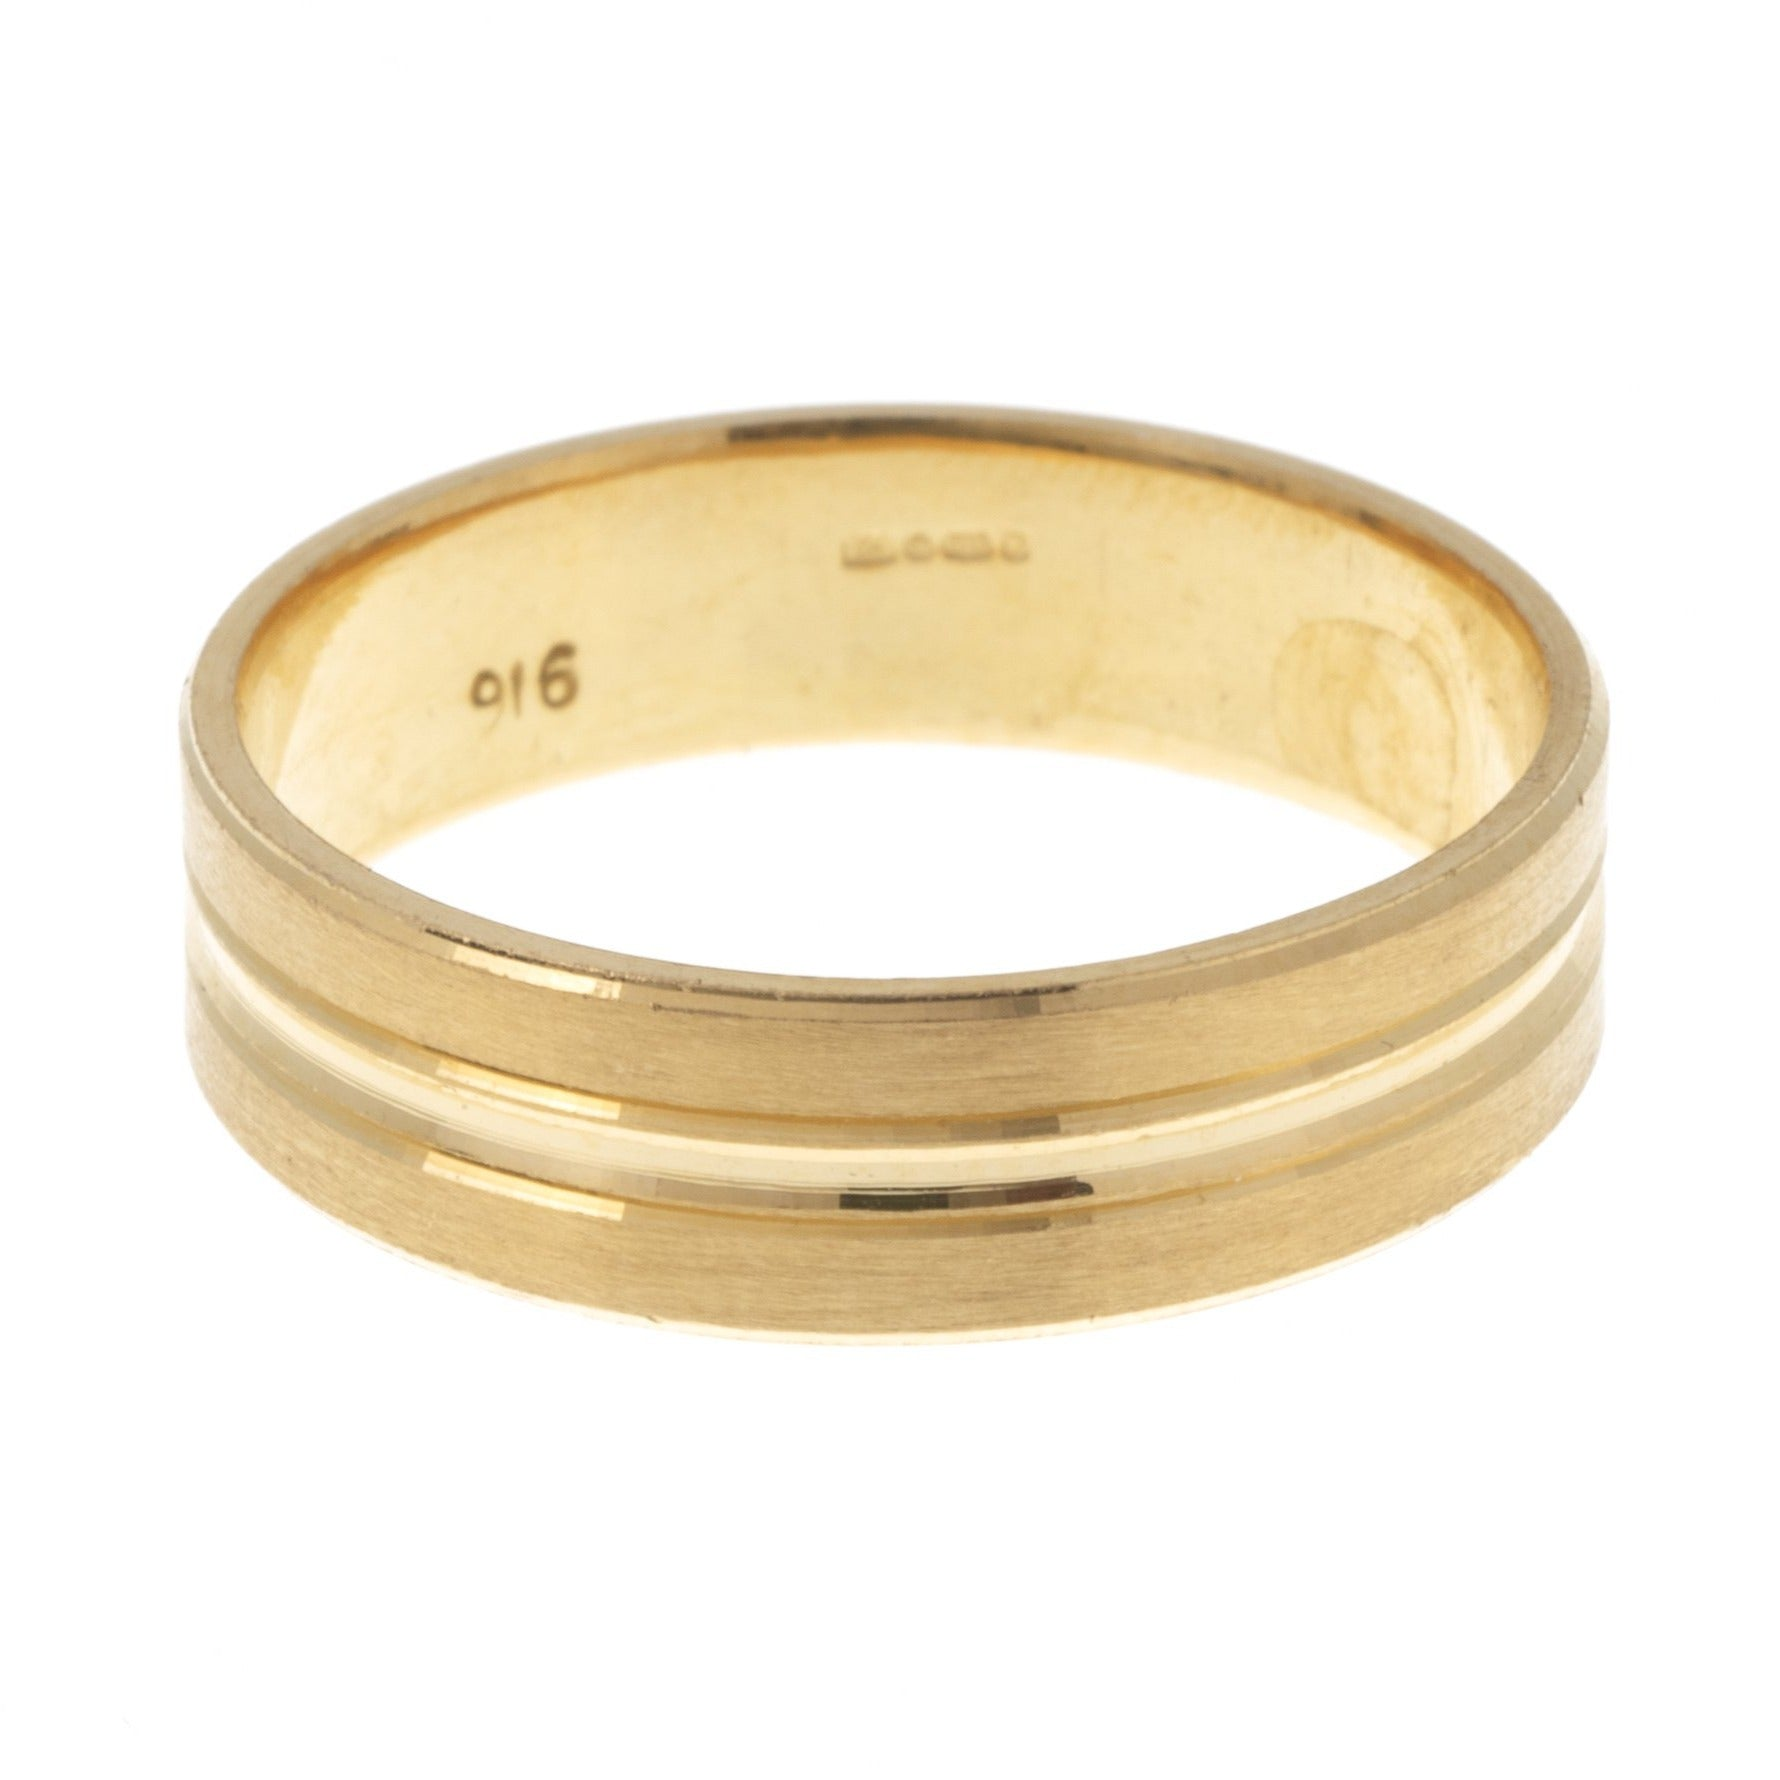 22ct Gold Gents Wedding Band with Diamond Cut Design (7.7g) GR-7370